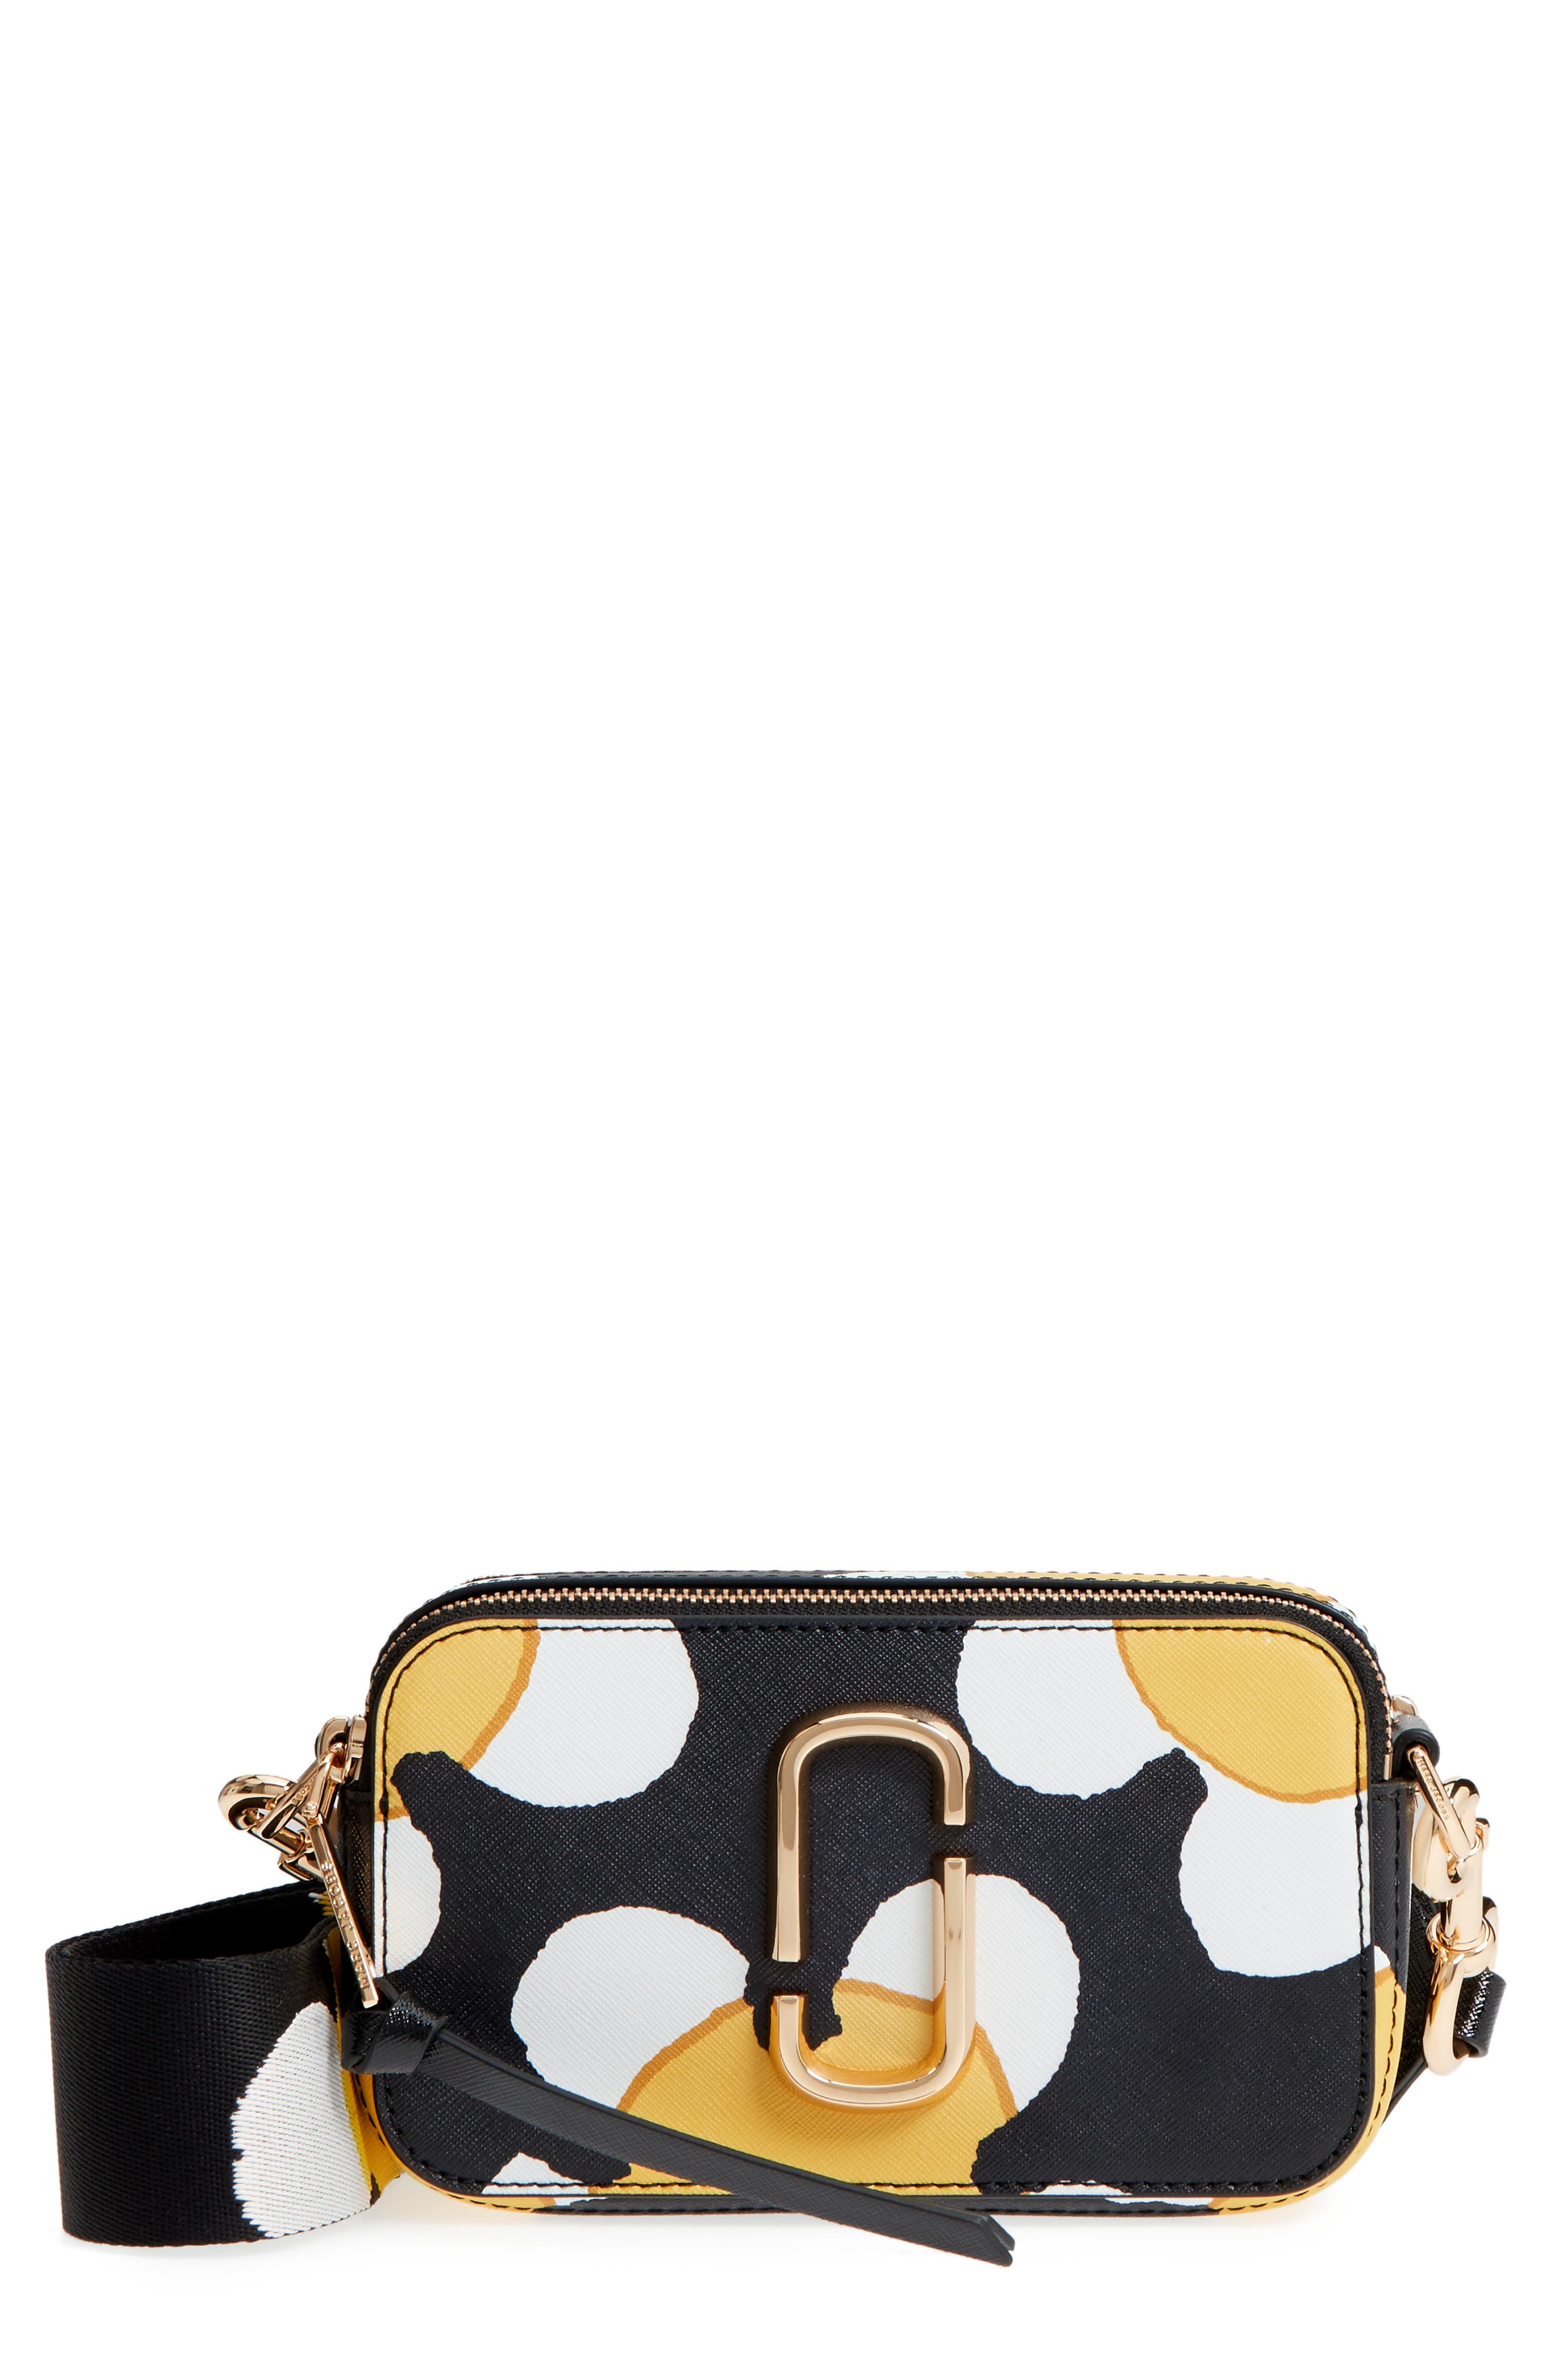 MARC JACOBS Snapshot Daisy Print Leather Crossbody Bag